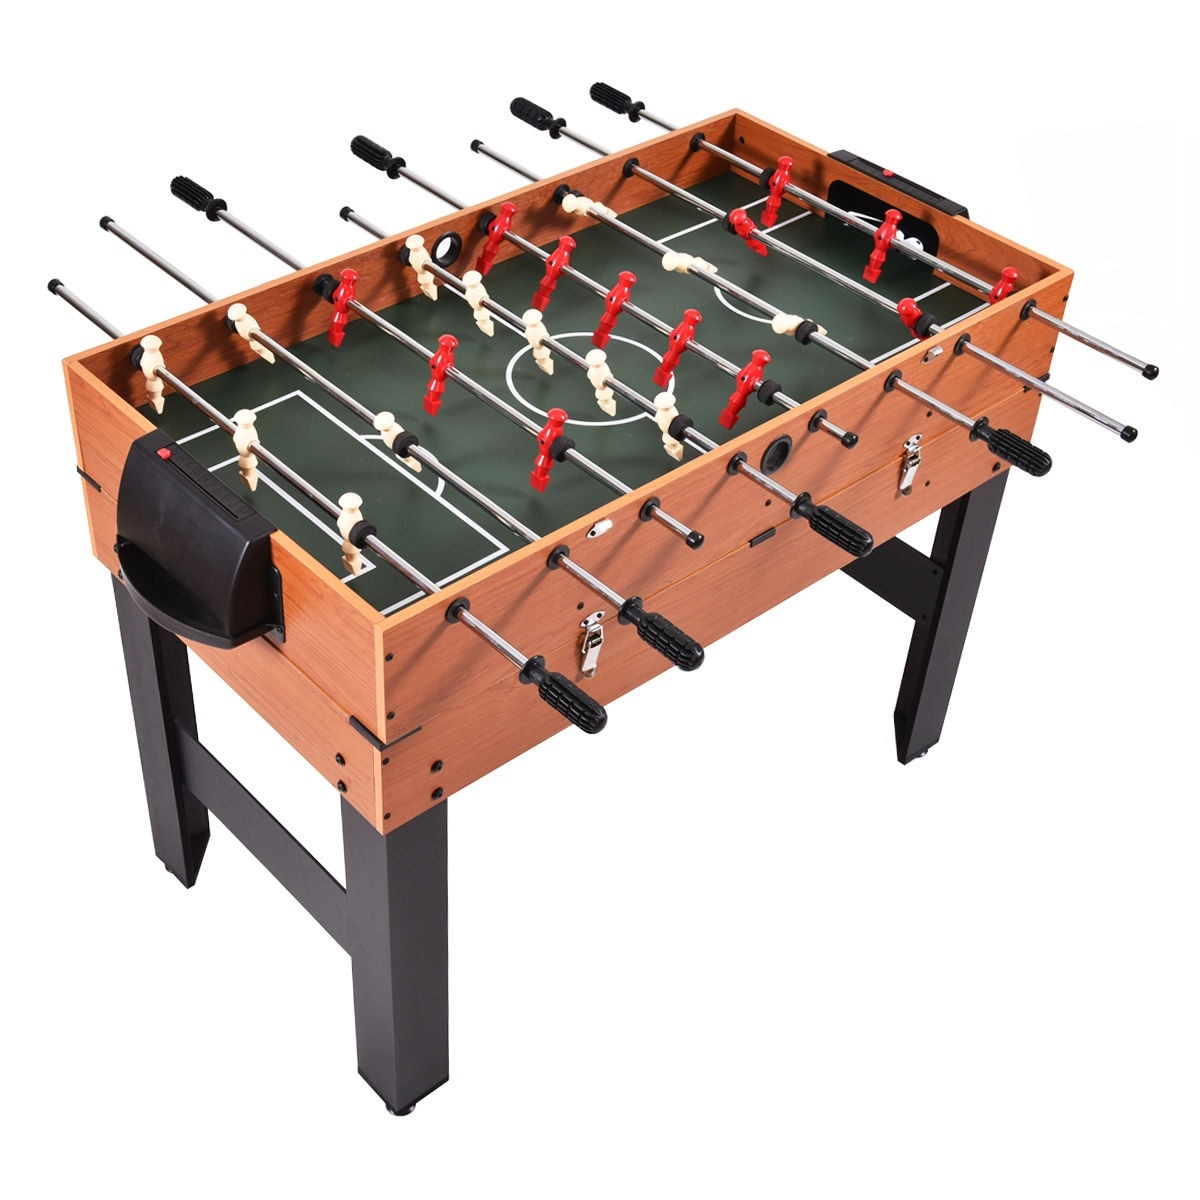 Superieur Shop Costway 48u0027u0027 3 In 1 Multi Combo Game Table Foosball Soccer Billiards  Pool Hockey For Kids   Free Shipping Today   Overstock.com   18606358